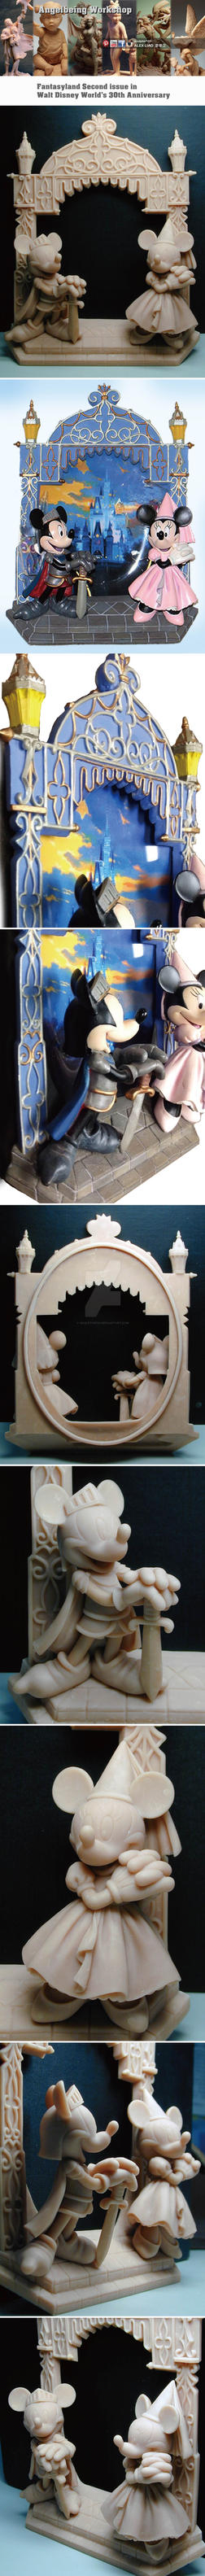 Fantasyland Second Issue Walt Disney World Gate by sculptor101